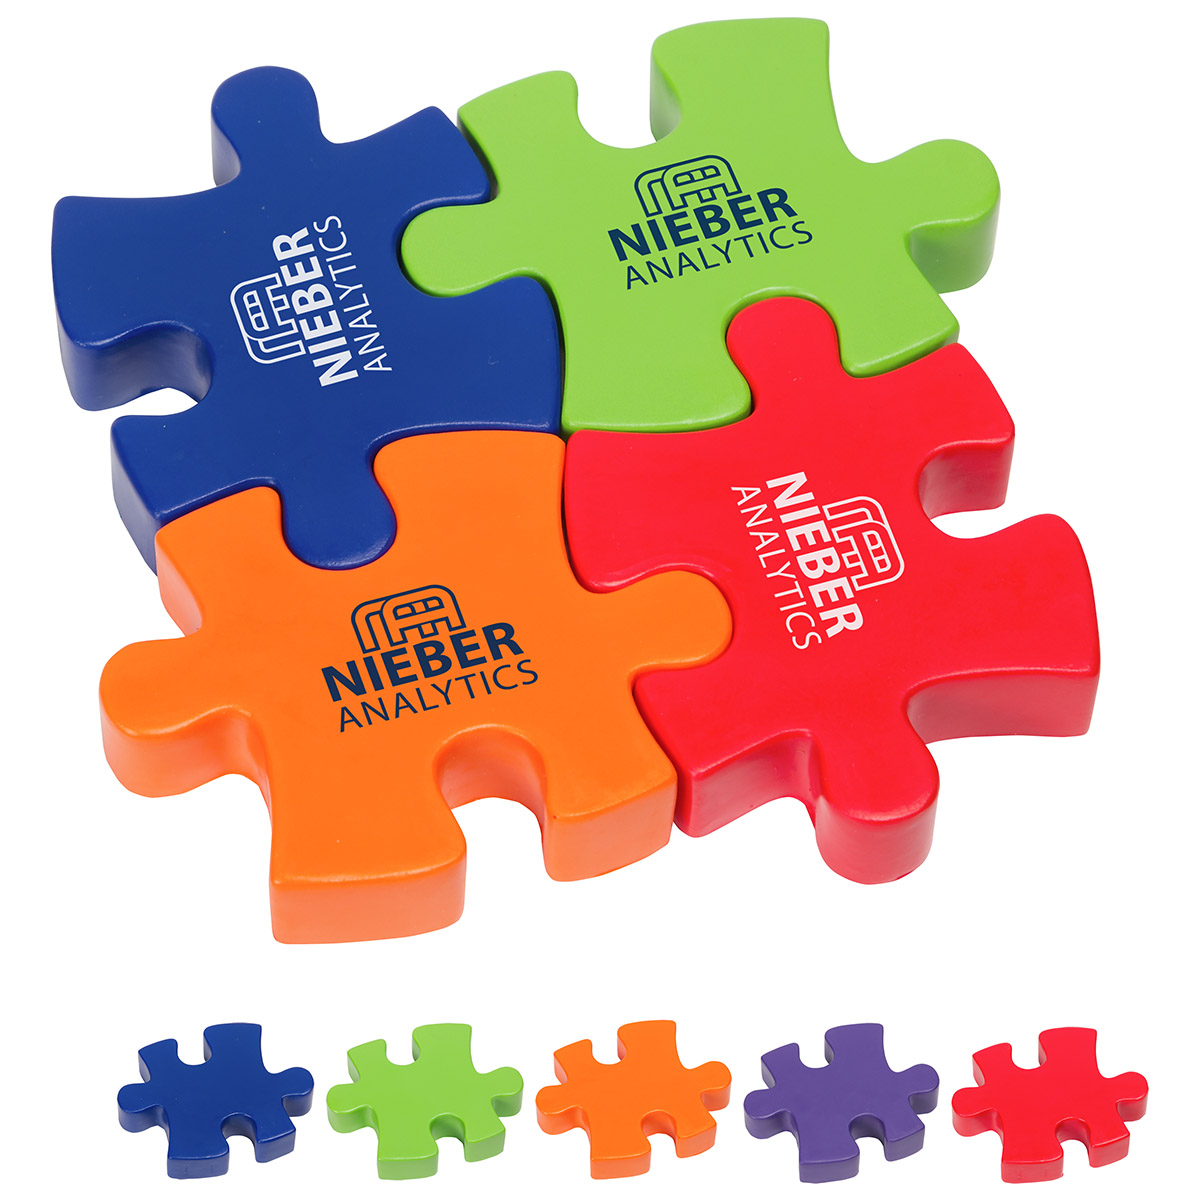 4-Piece Connecting Puzzle Set Stress Reliever, LGS-4P17, 1 Colour Imprint